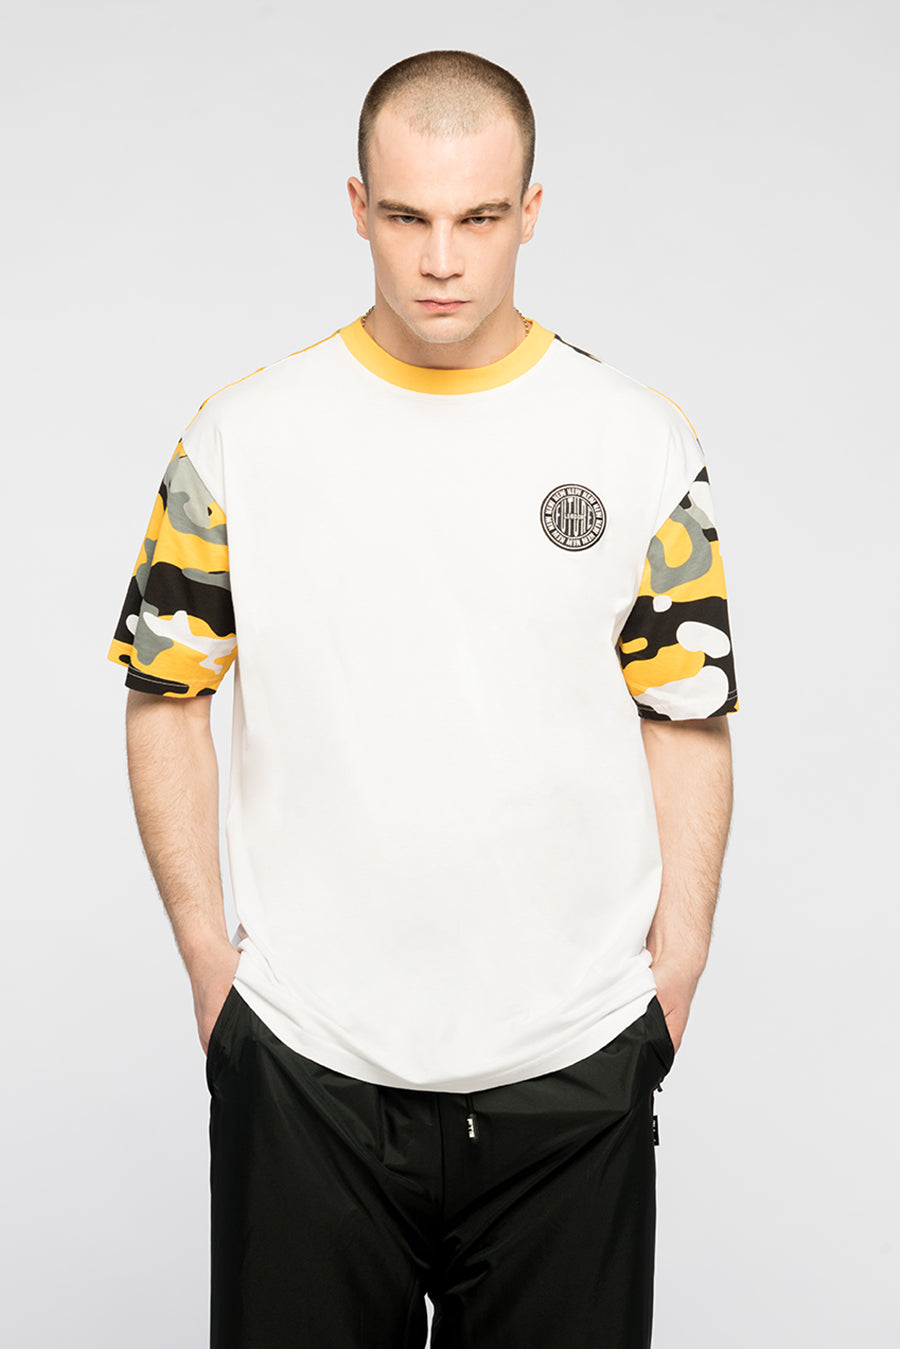 new_future_london_camo_yellow_t_shirt_wht_5-1.jpg